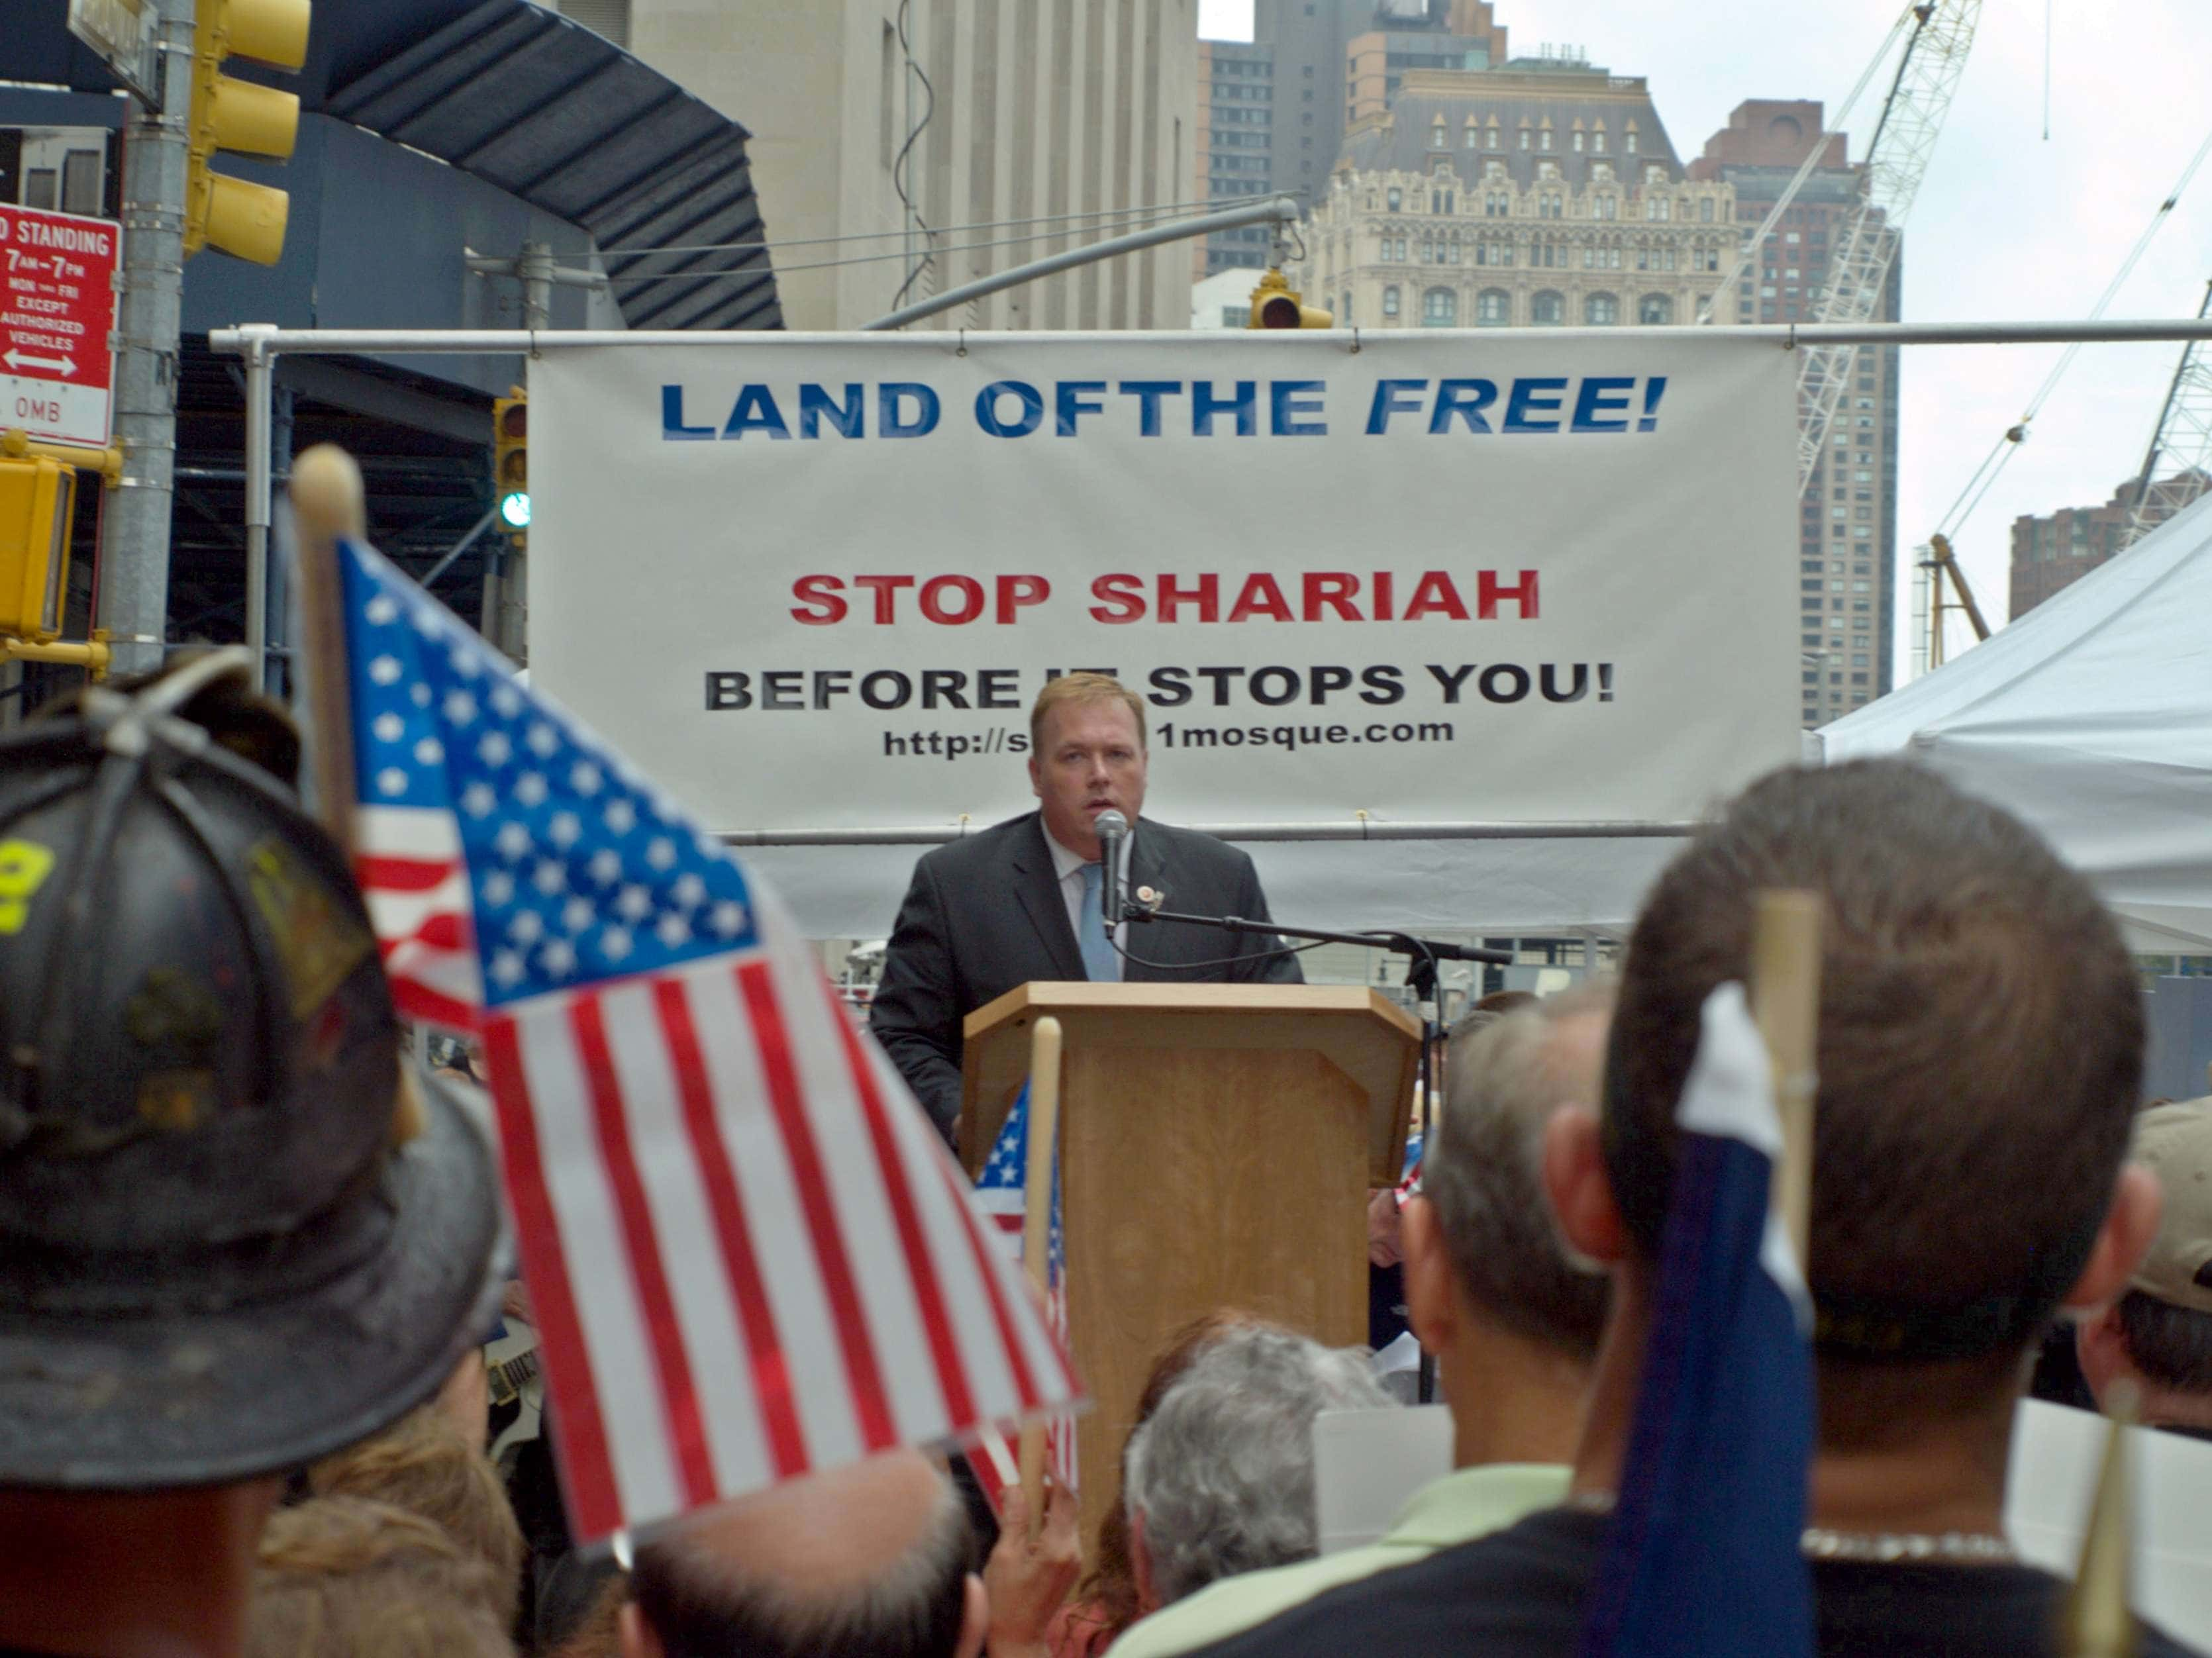 A speaker addresses a rally in lower Manhattan against the construction of the so-called Ground Zero mosque on August 22, 2010. (Photo Credit: David Shankbone via Flickr)